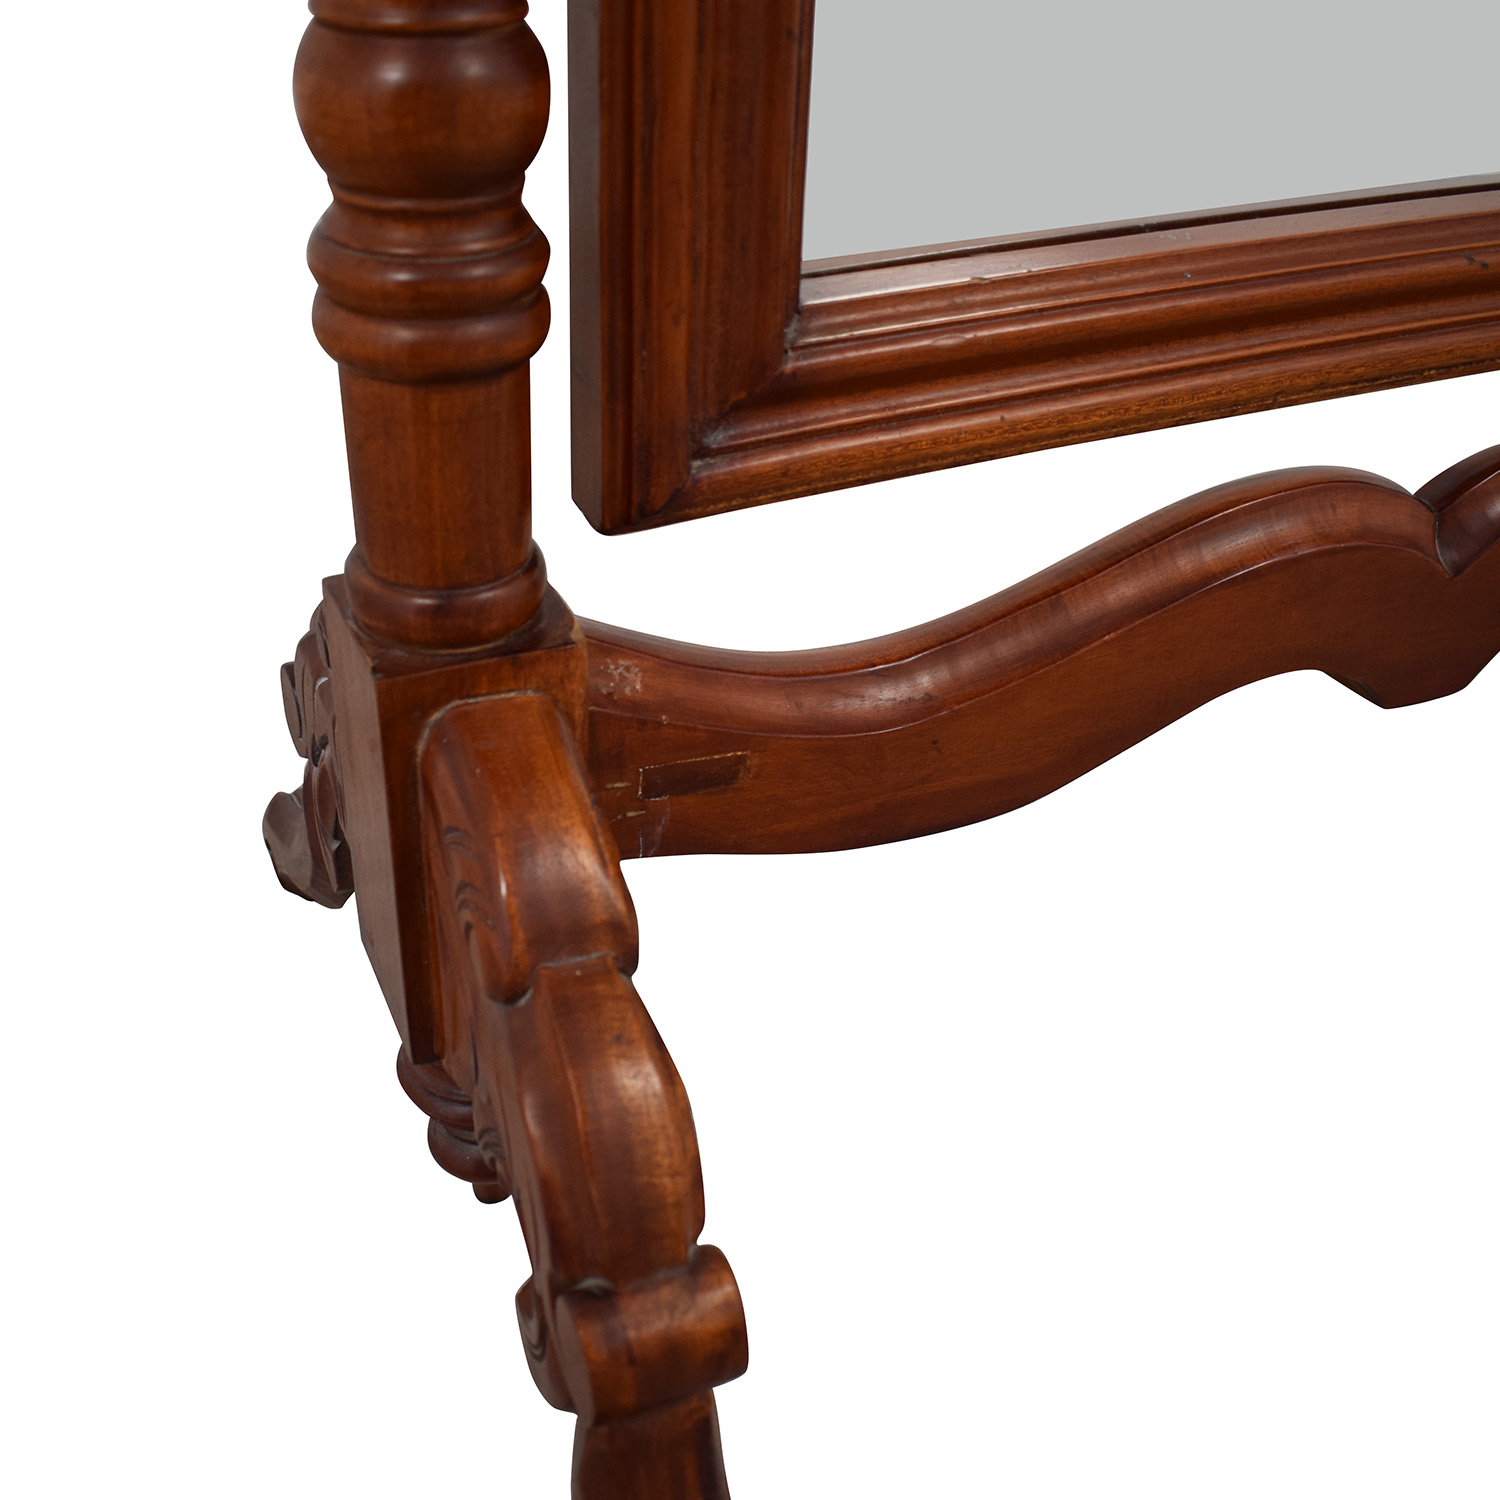 Carved Wooden Standing Mirror Decor